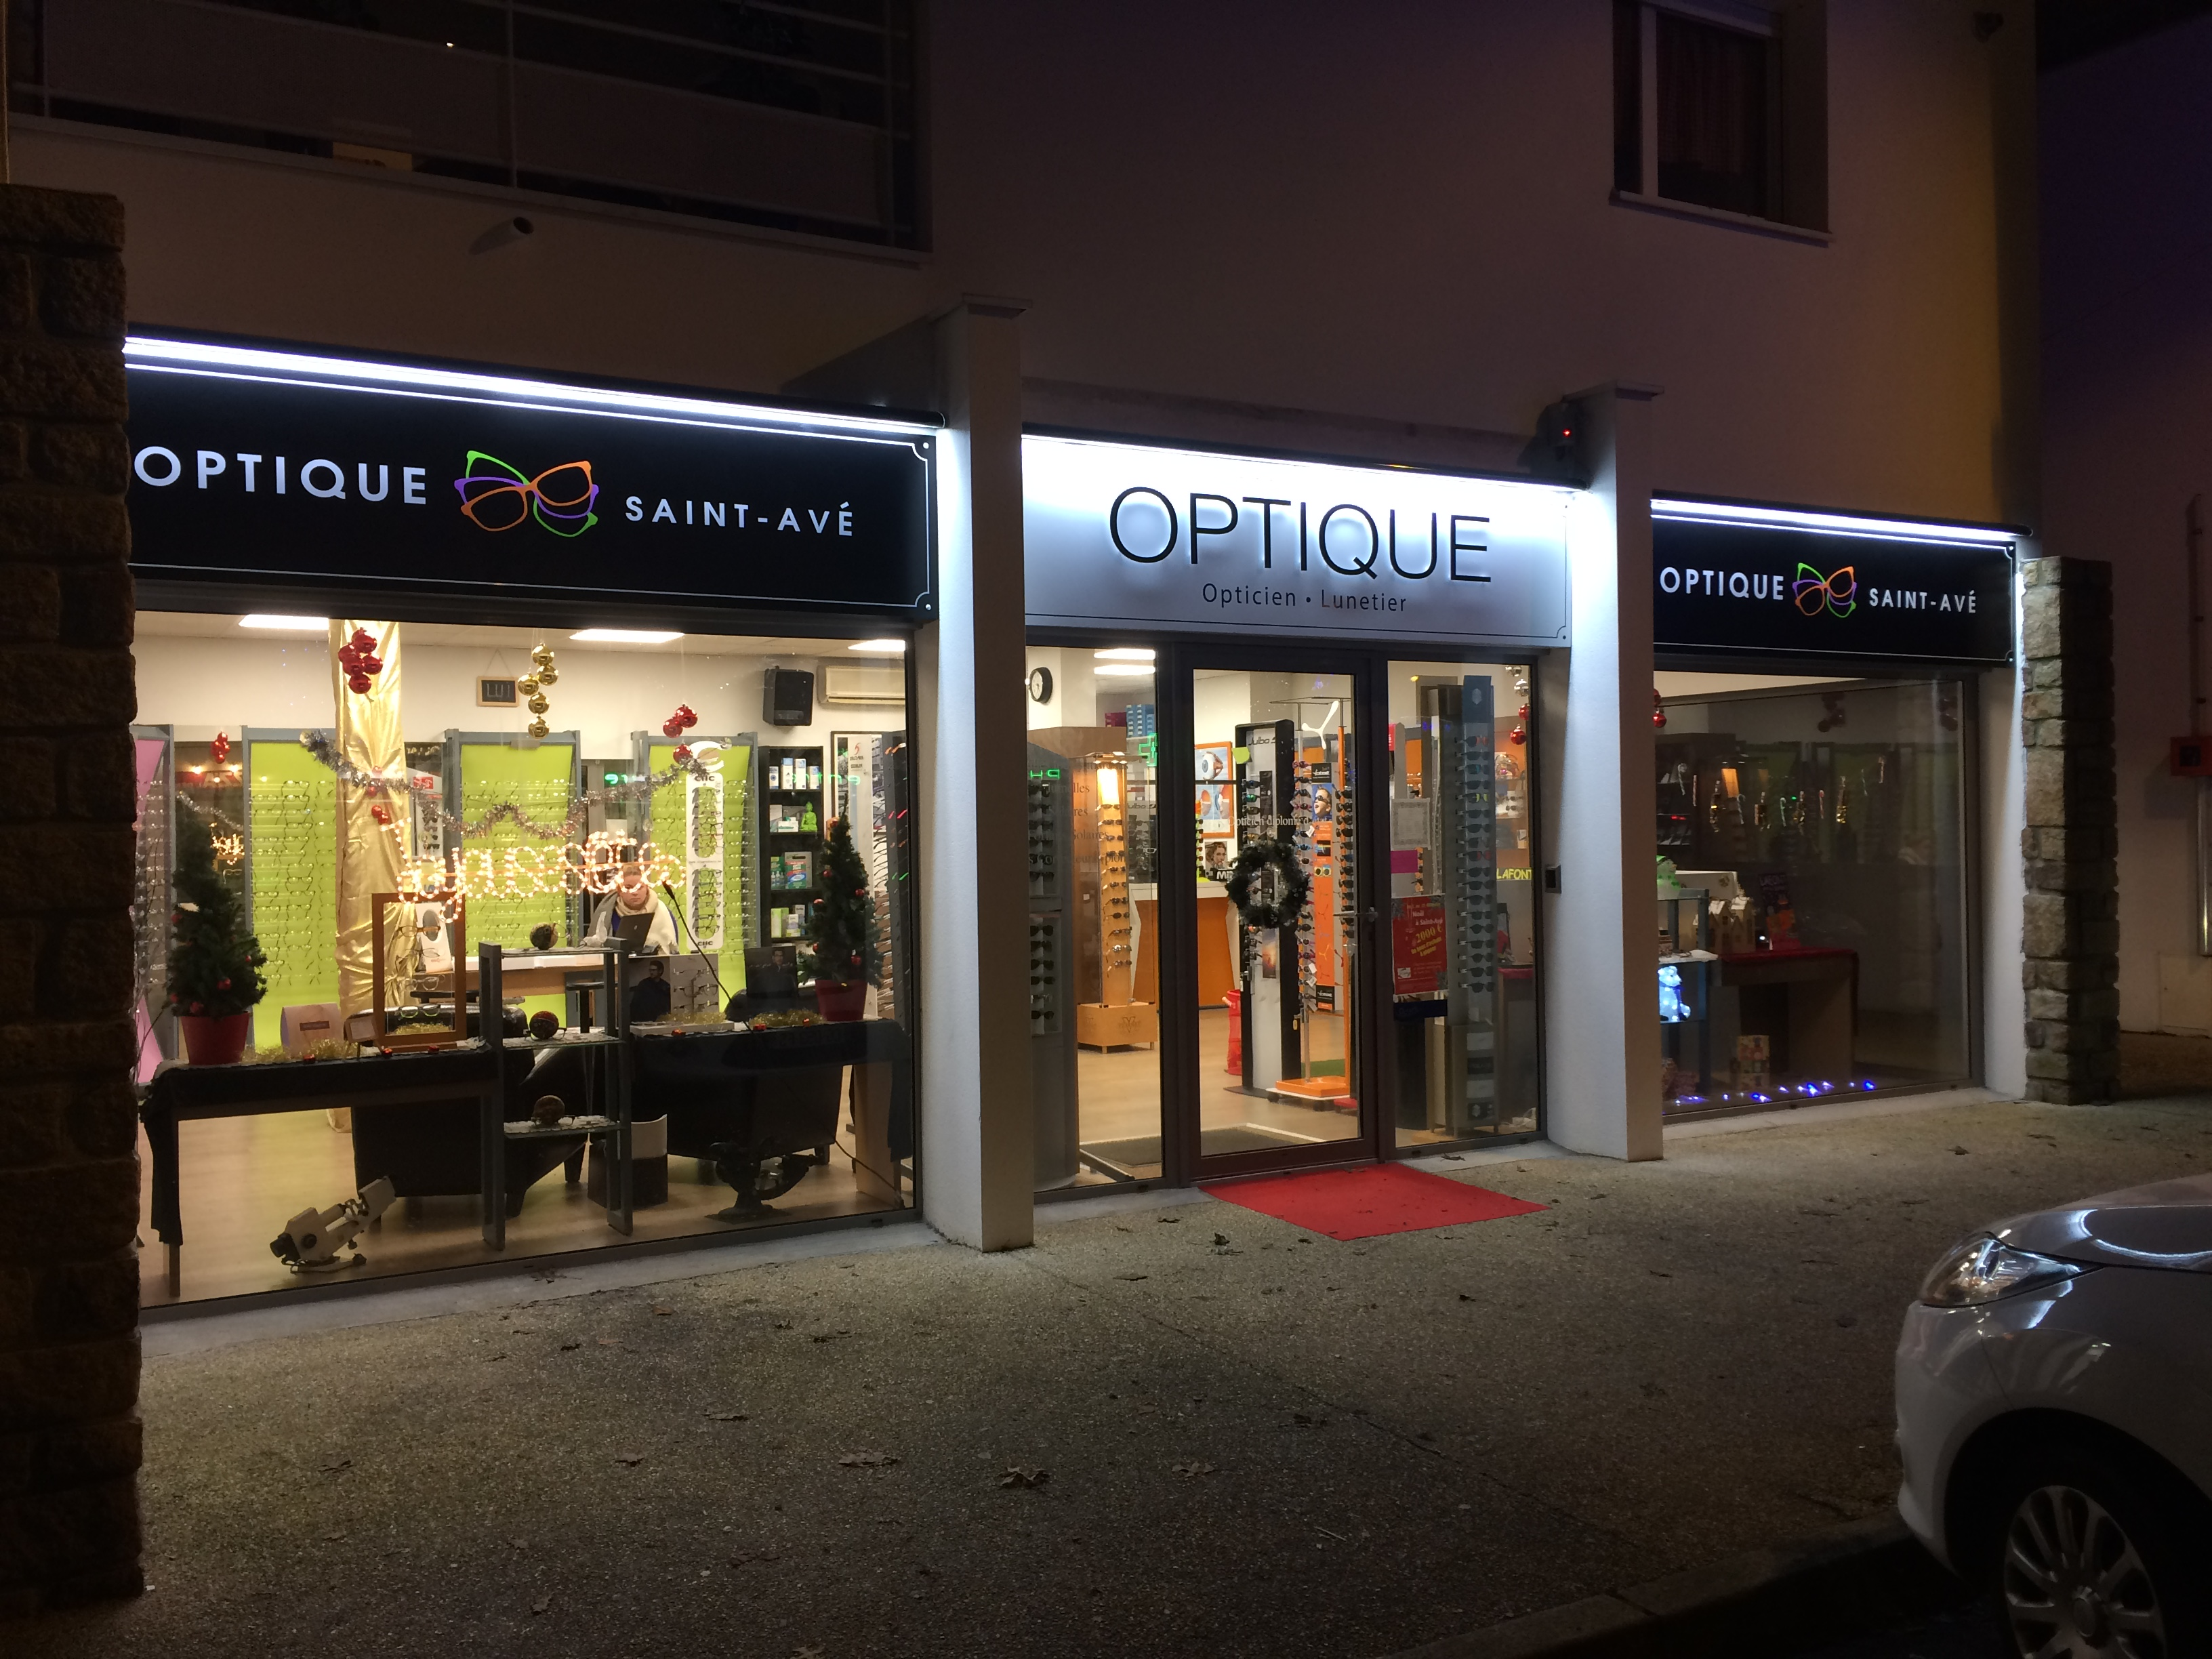 Opticien : OPTIQUE SAINT-AVÉ,  PLACE FRANCOIS MITTERRAND, 56890 SAINT - AVE